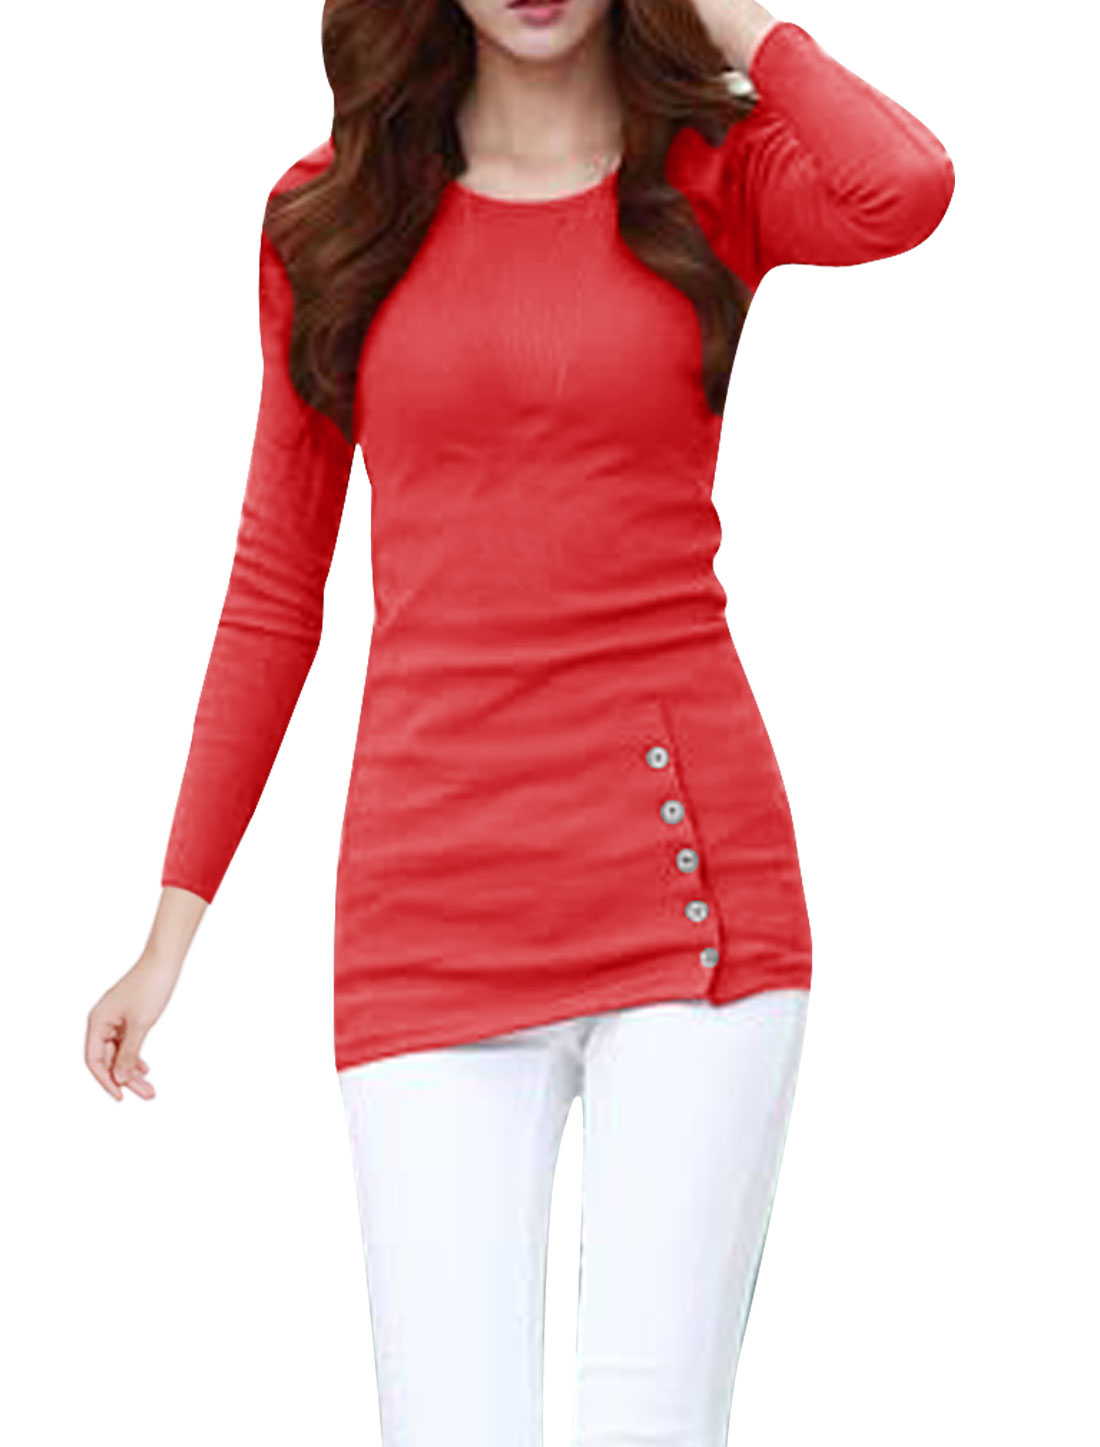 Pullover Stretchy Slim Fit Slant Button Decor Watermelon Red T-Shirt for Lady XS